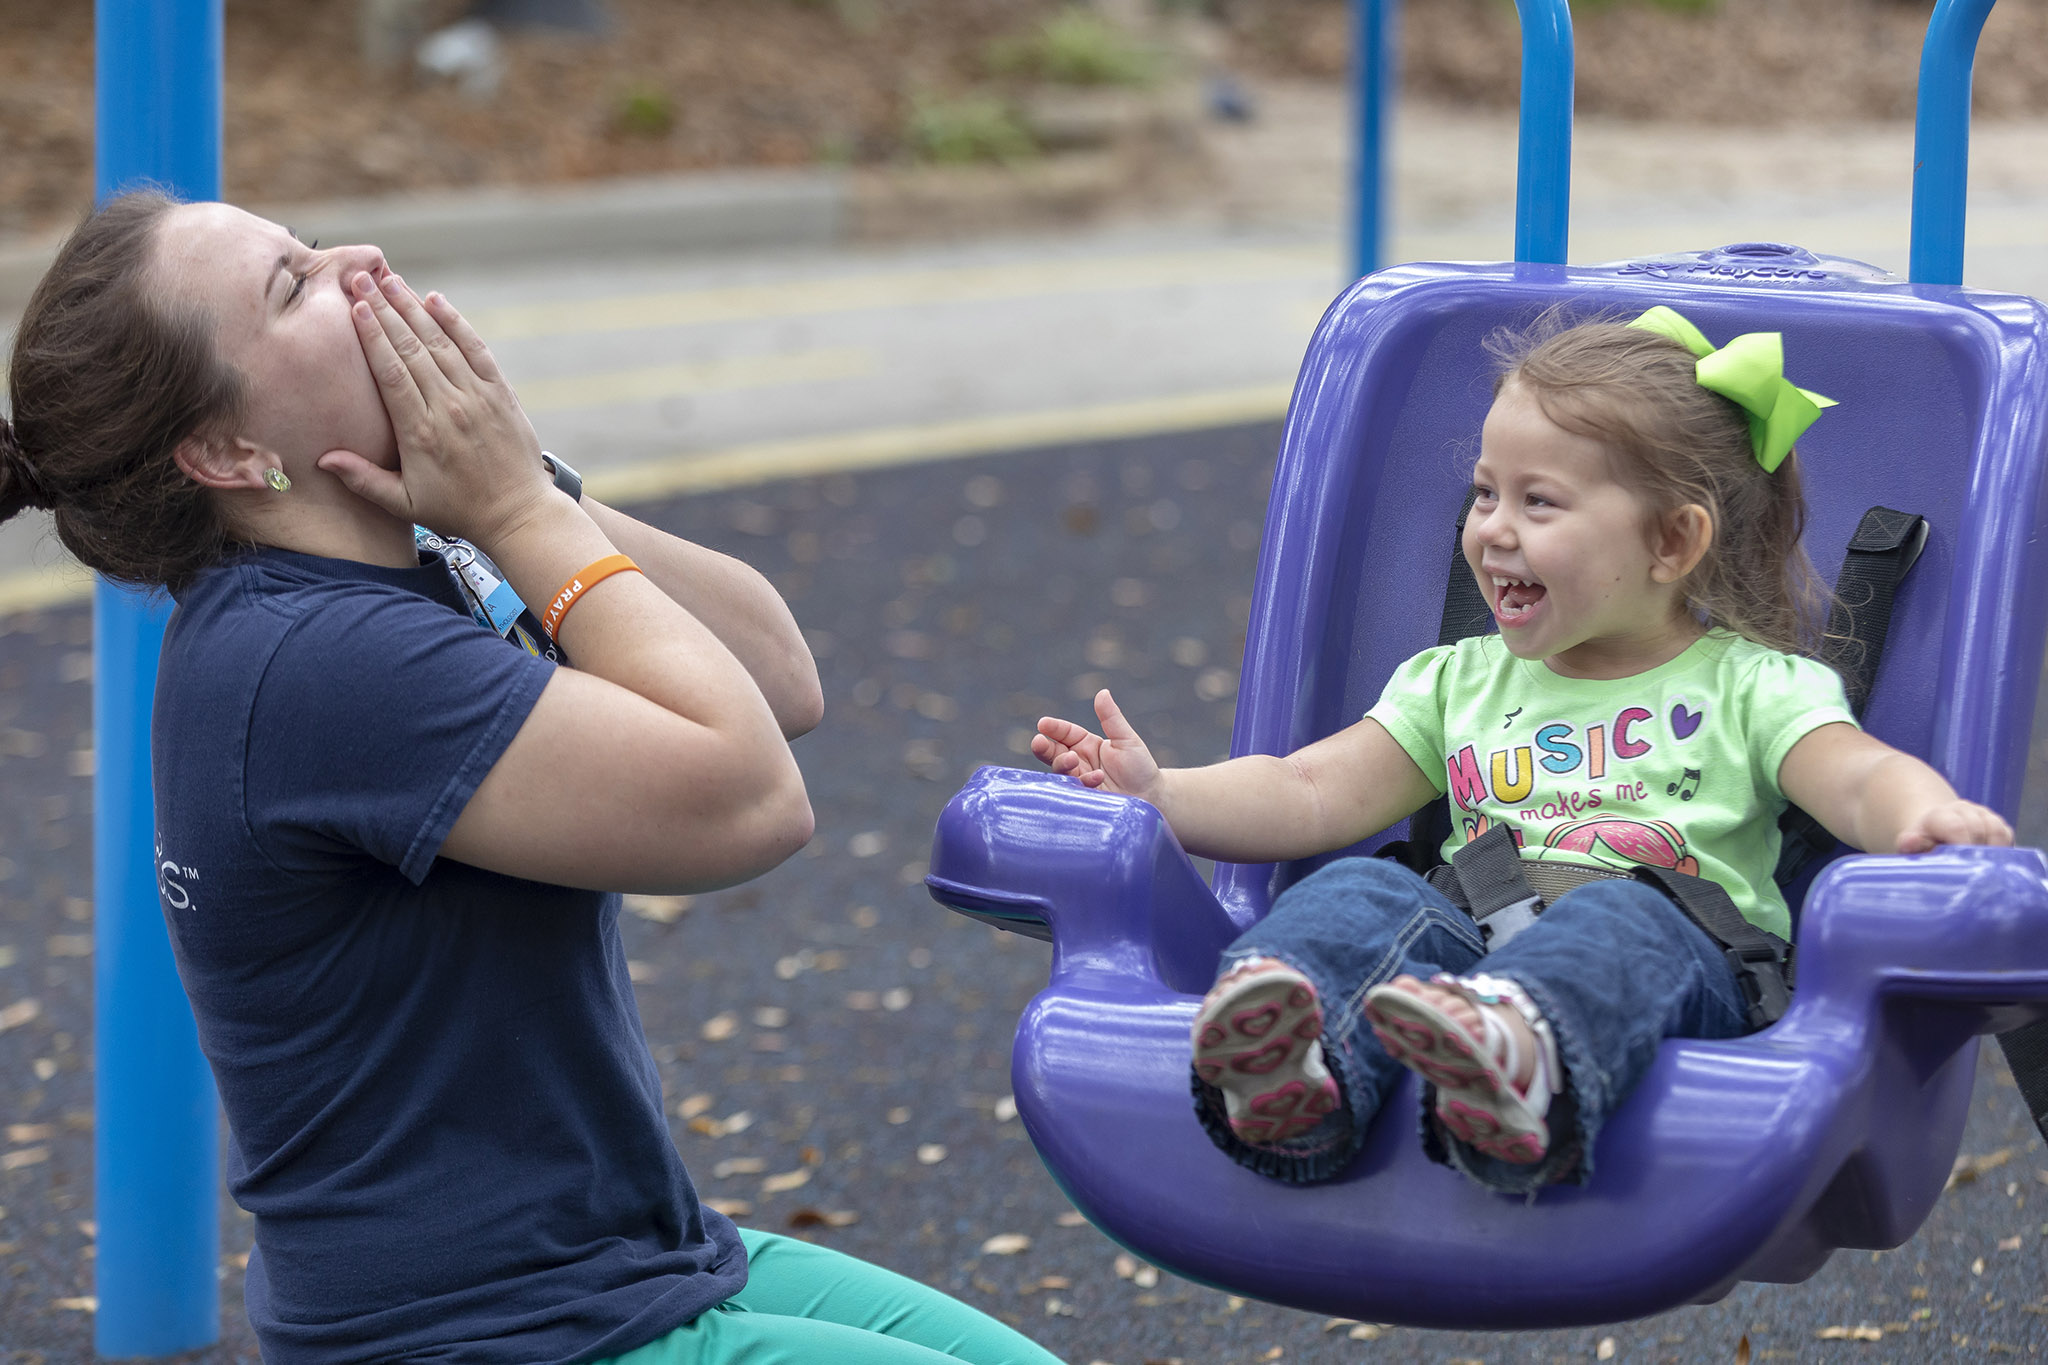 Brianna Rizzo, a speech pathologist at Johns Hopkins All Children's Hospital, works with Iva.